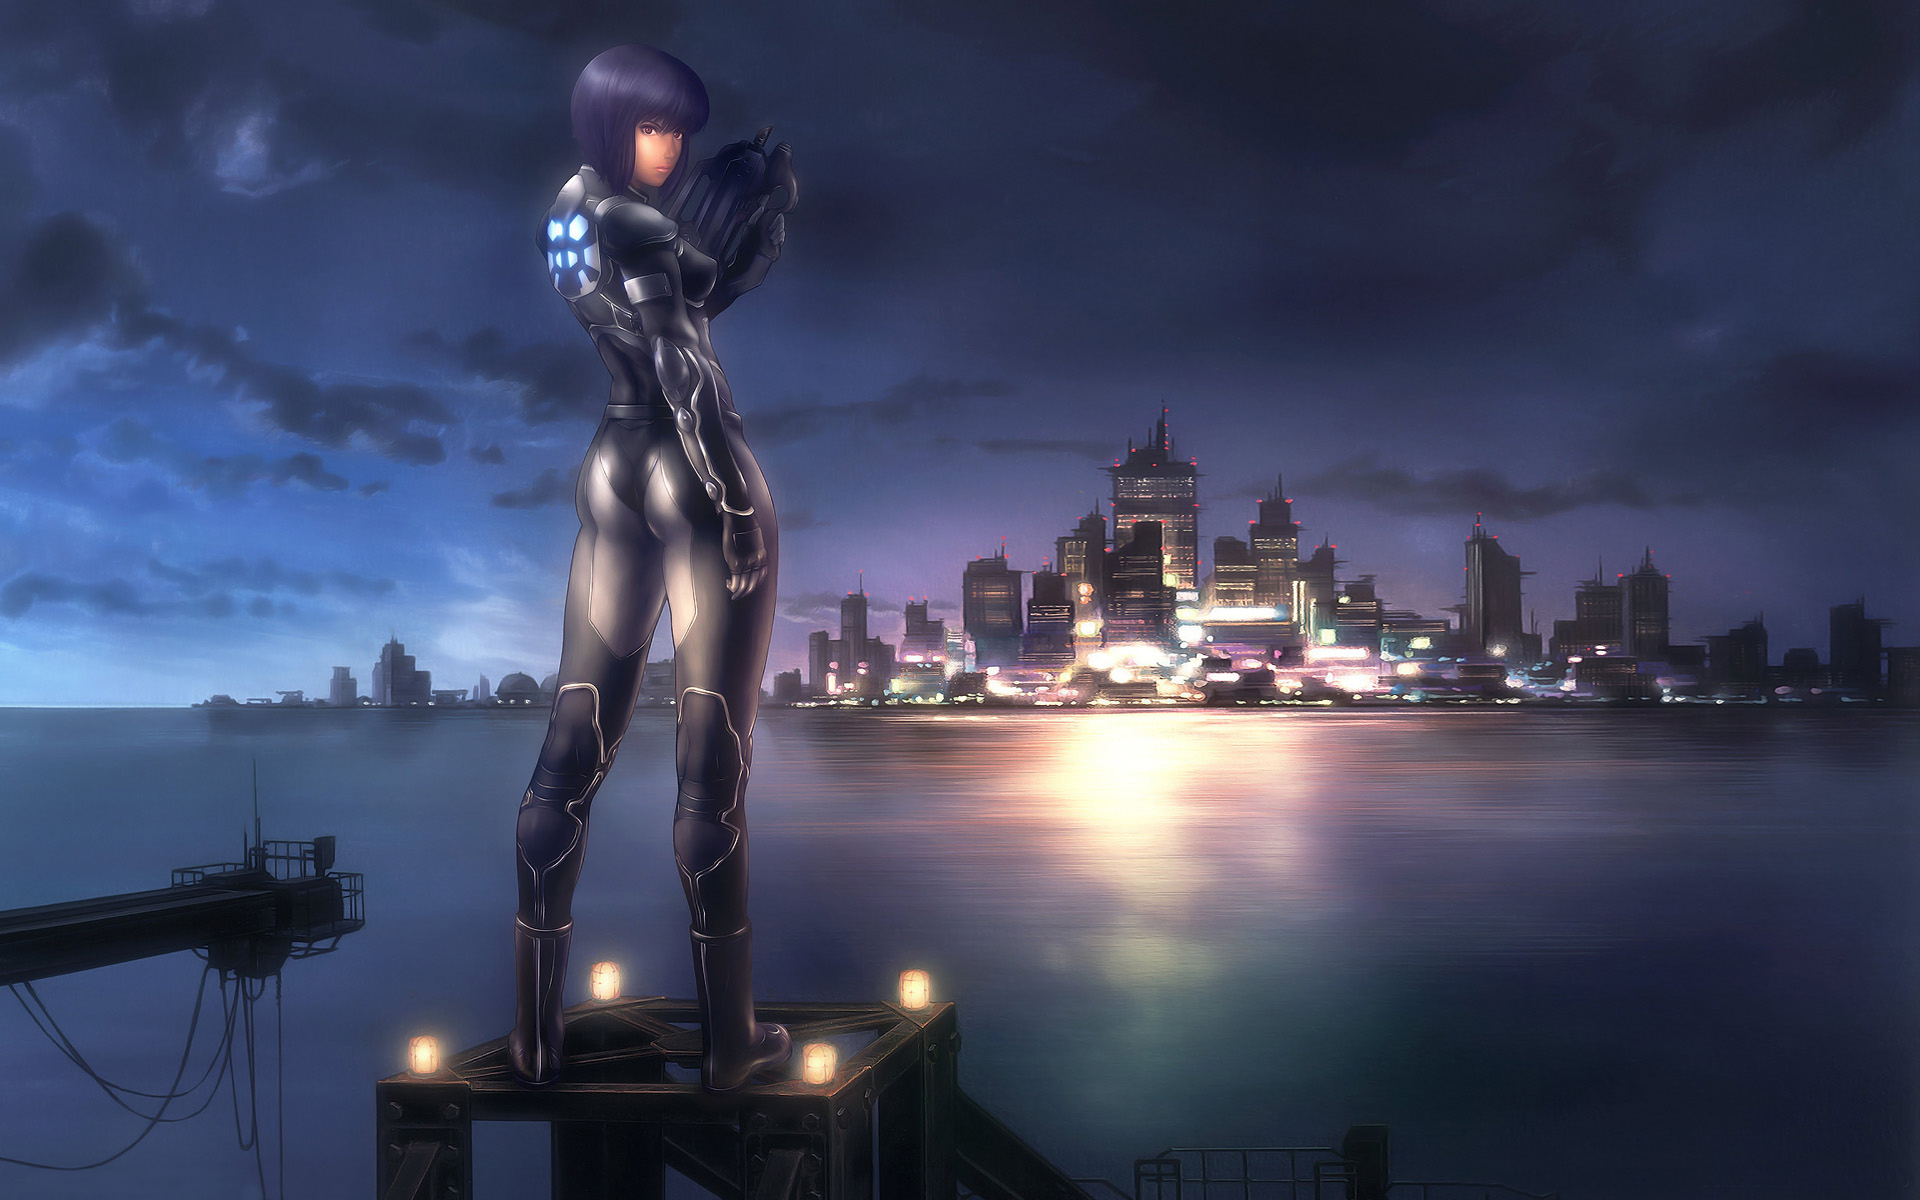 Ghost In The Shell Hd Wallpaper Posted By Ryan Johnson